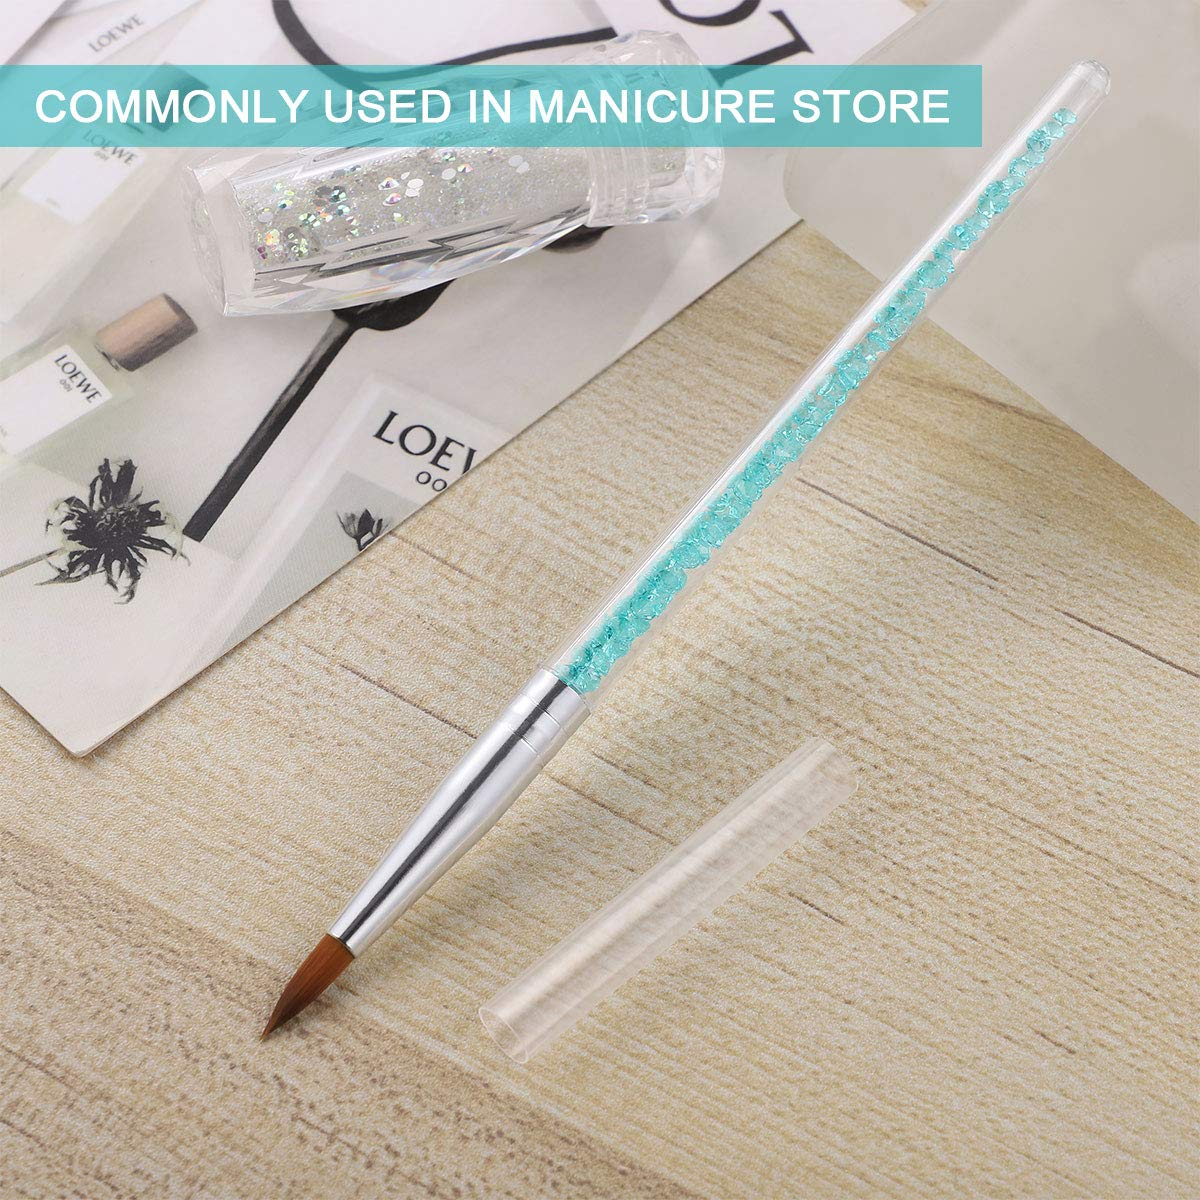 Acrylic Nail Brush for Acrylic Powder Manicure Pedicure Nail Art Brushes with Rhinestone Handle Nail Painting Brush 6pcs